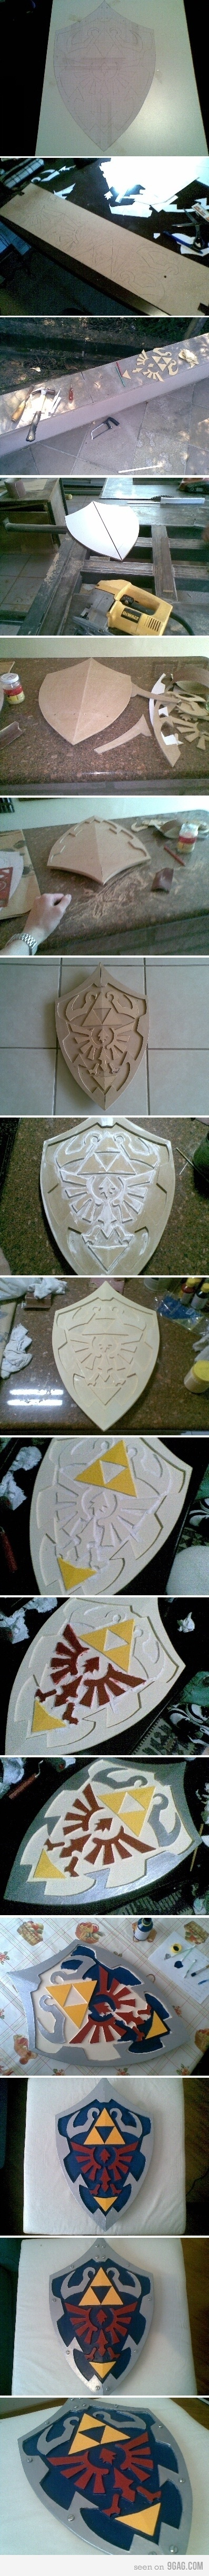 Making an hylian shield. I may have to do this.